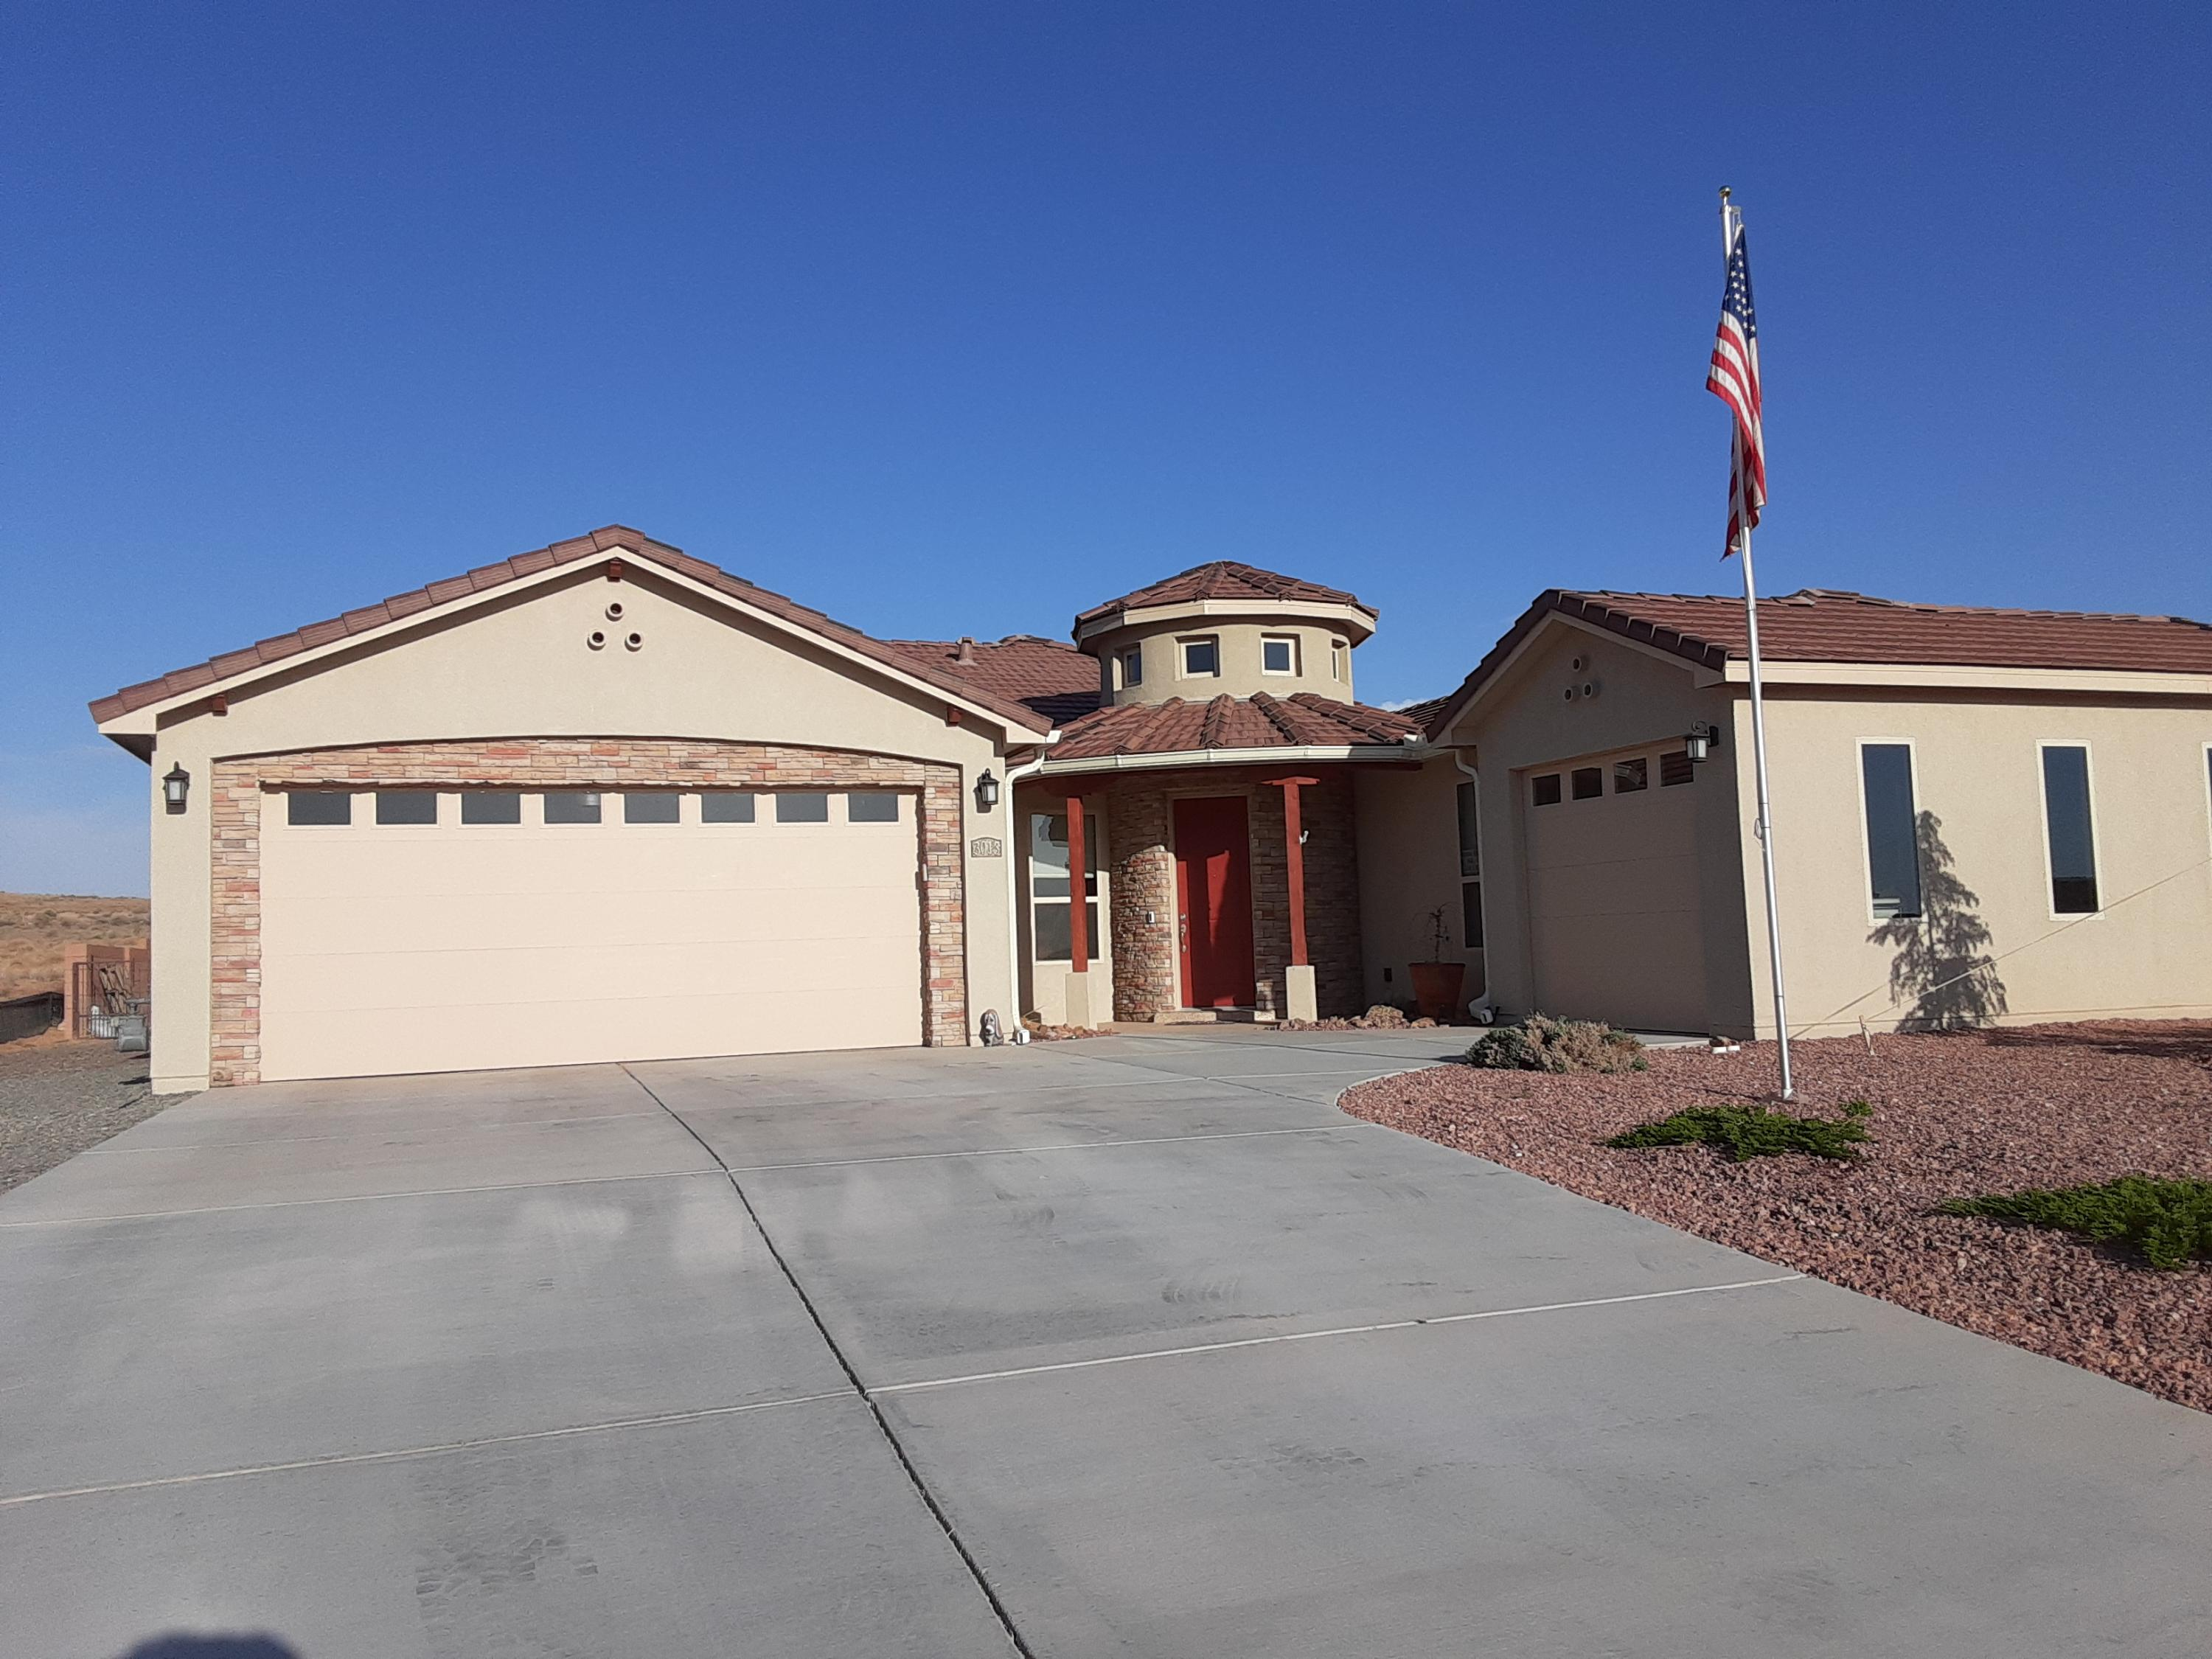 Custom 4 yrs young on half acre, fully landscaped front and back  for your toys, Formal Dinning room,  kitchen eating area with large granite island for gathering, stainless steel appl, large farmer sink,,  Masterbedr., with Jaccuzzi tub and steam shower  many  extras